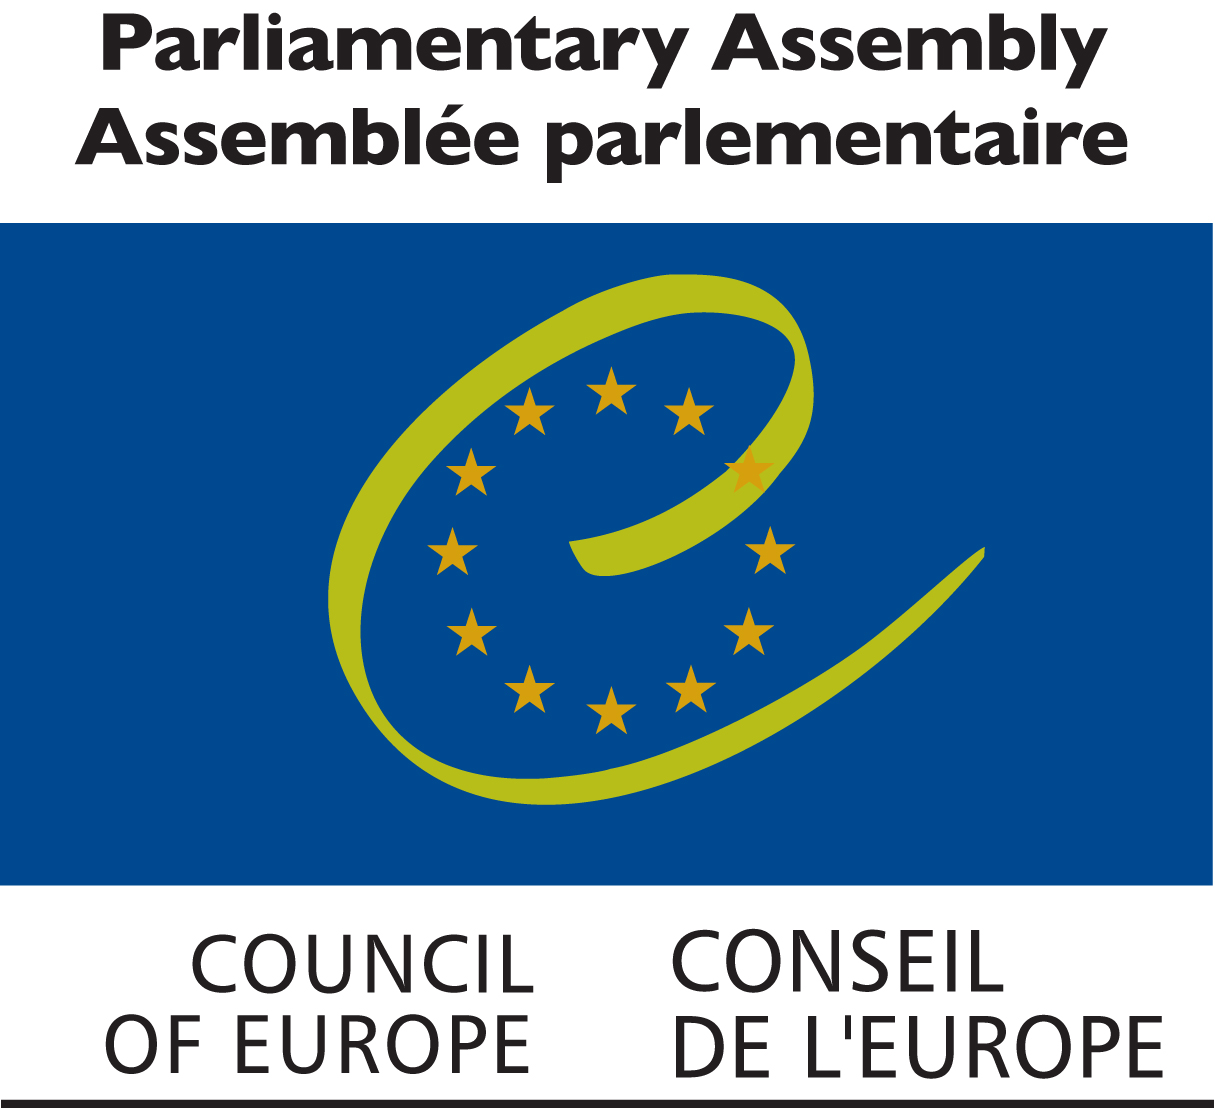 The worsening situation of opposition politicians in Turkey: what can be done to protect their fundamental rights in a Council of Europe member State?